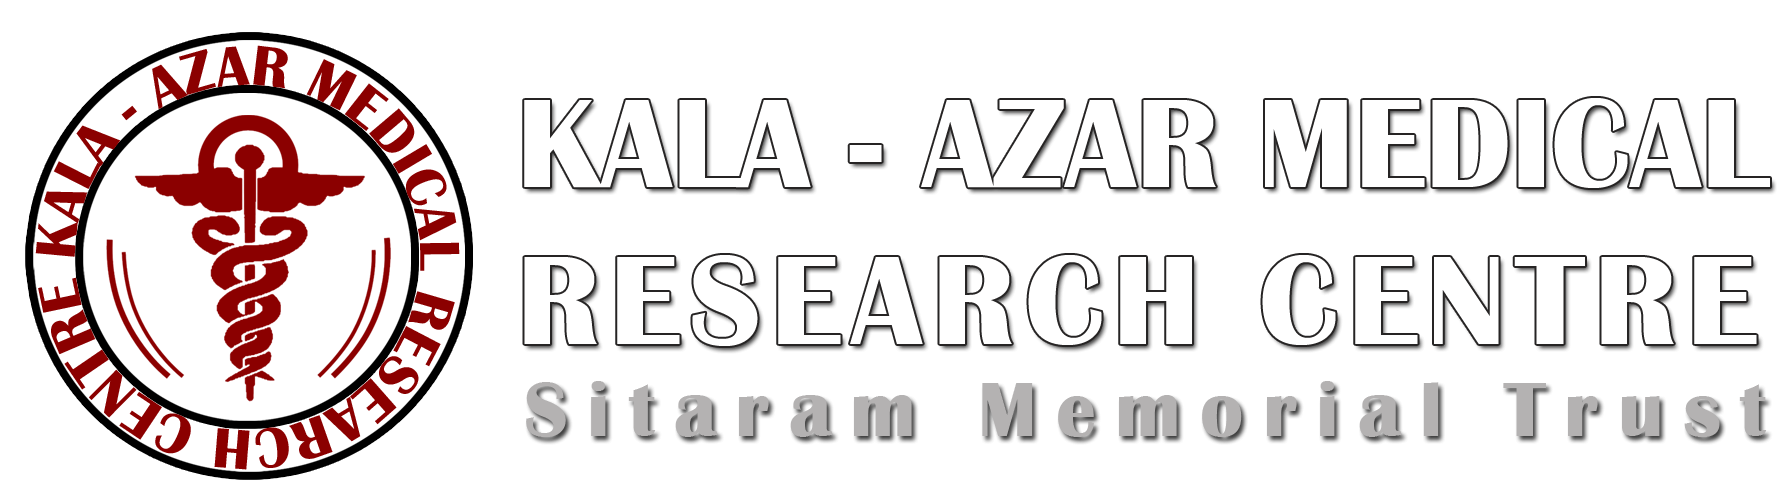 Kala Azar Medical Research Centre logo